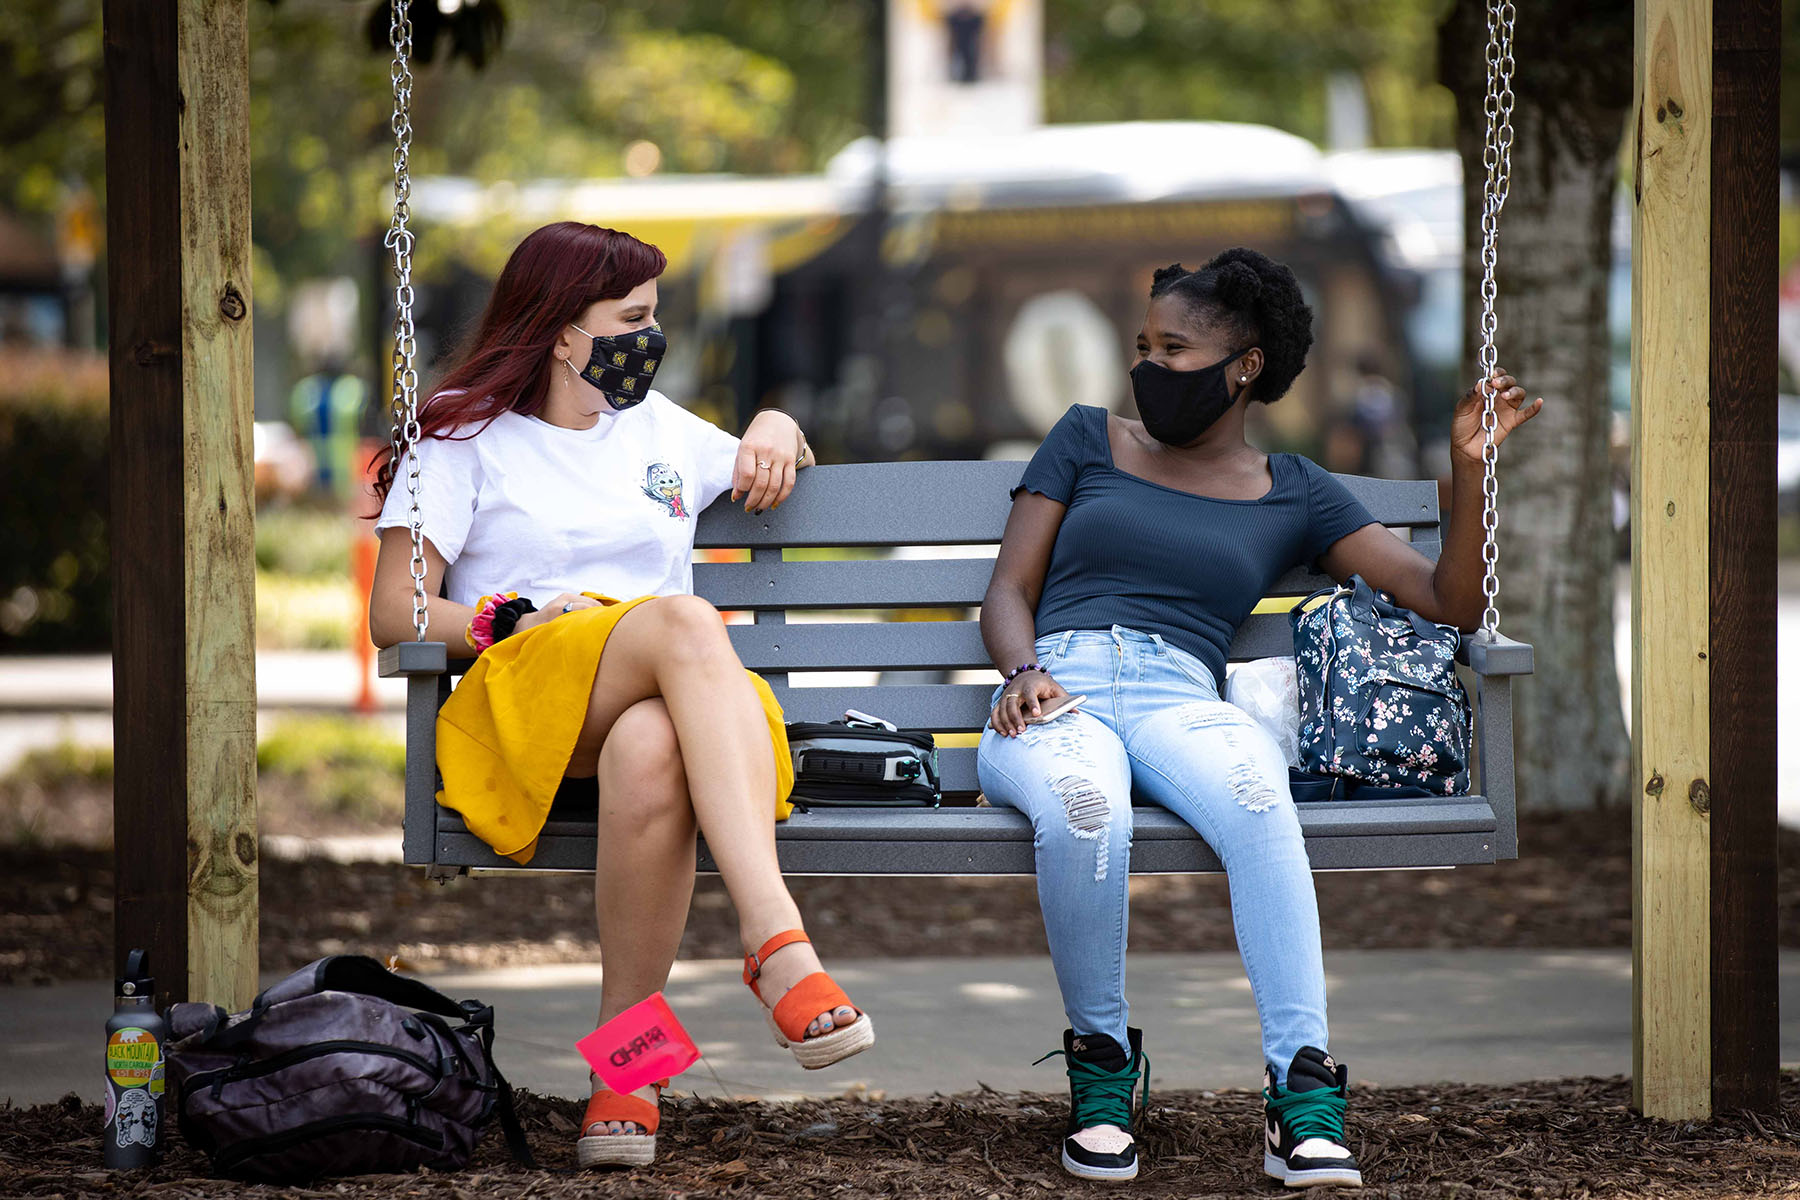 students on swing